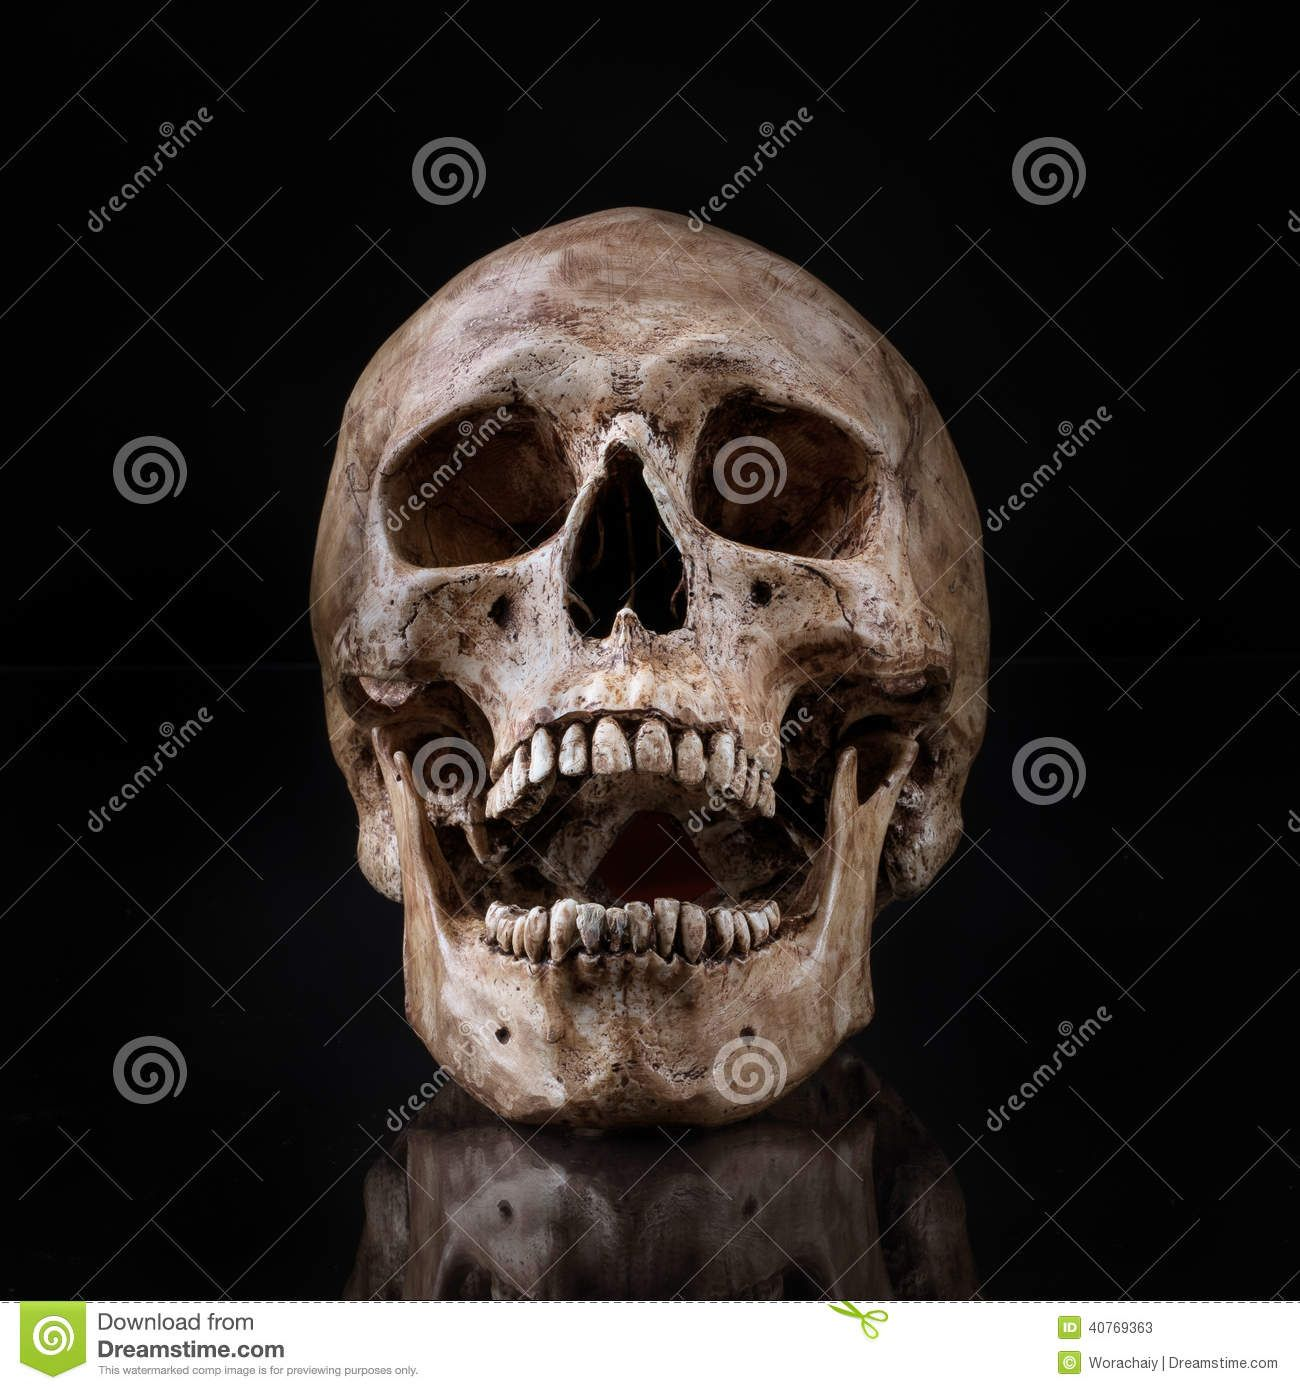 human skull front jaw open - Google Search | skull_jaw ...